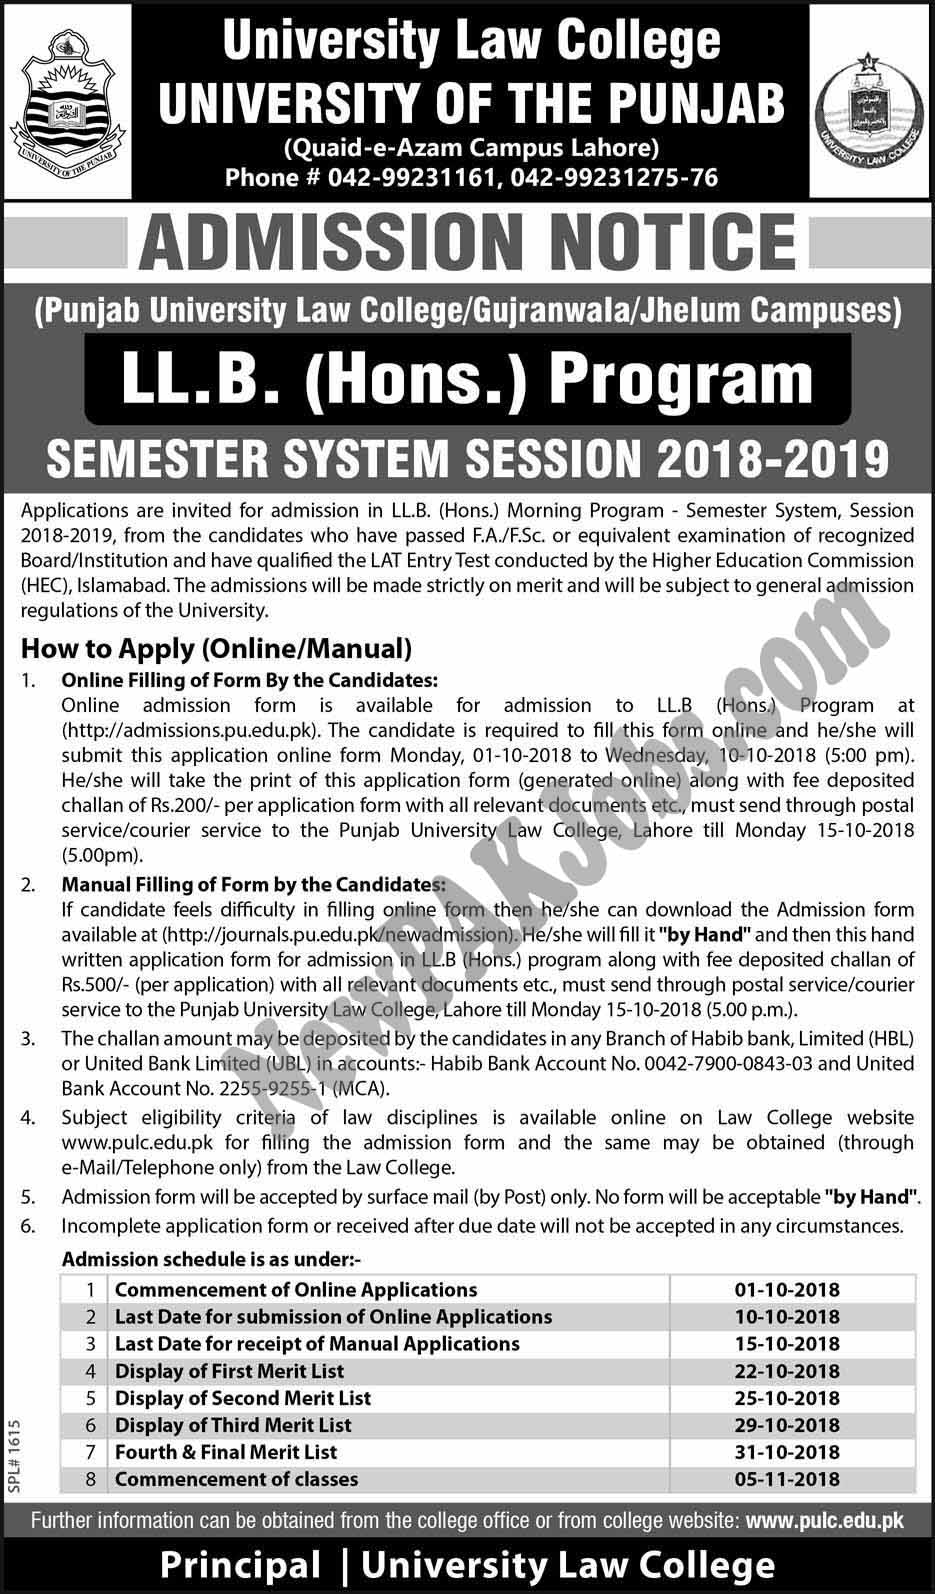 Admissions-Opens-in-University-Law-College-University-of-the-Punjab-